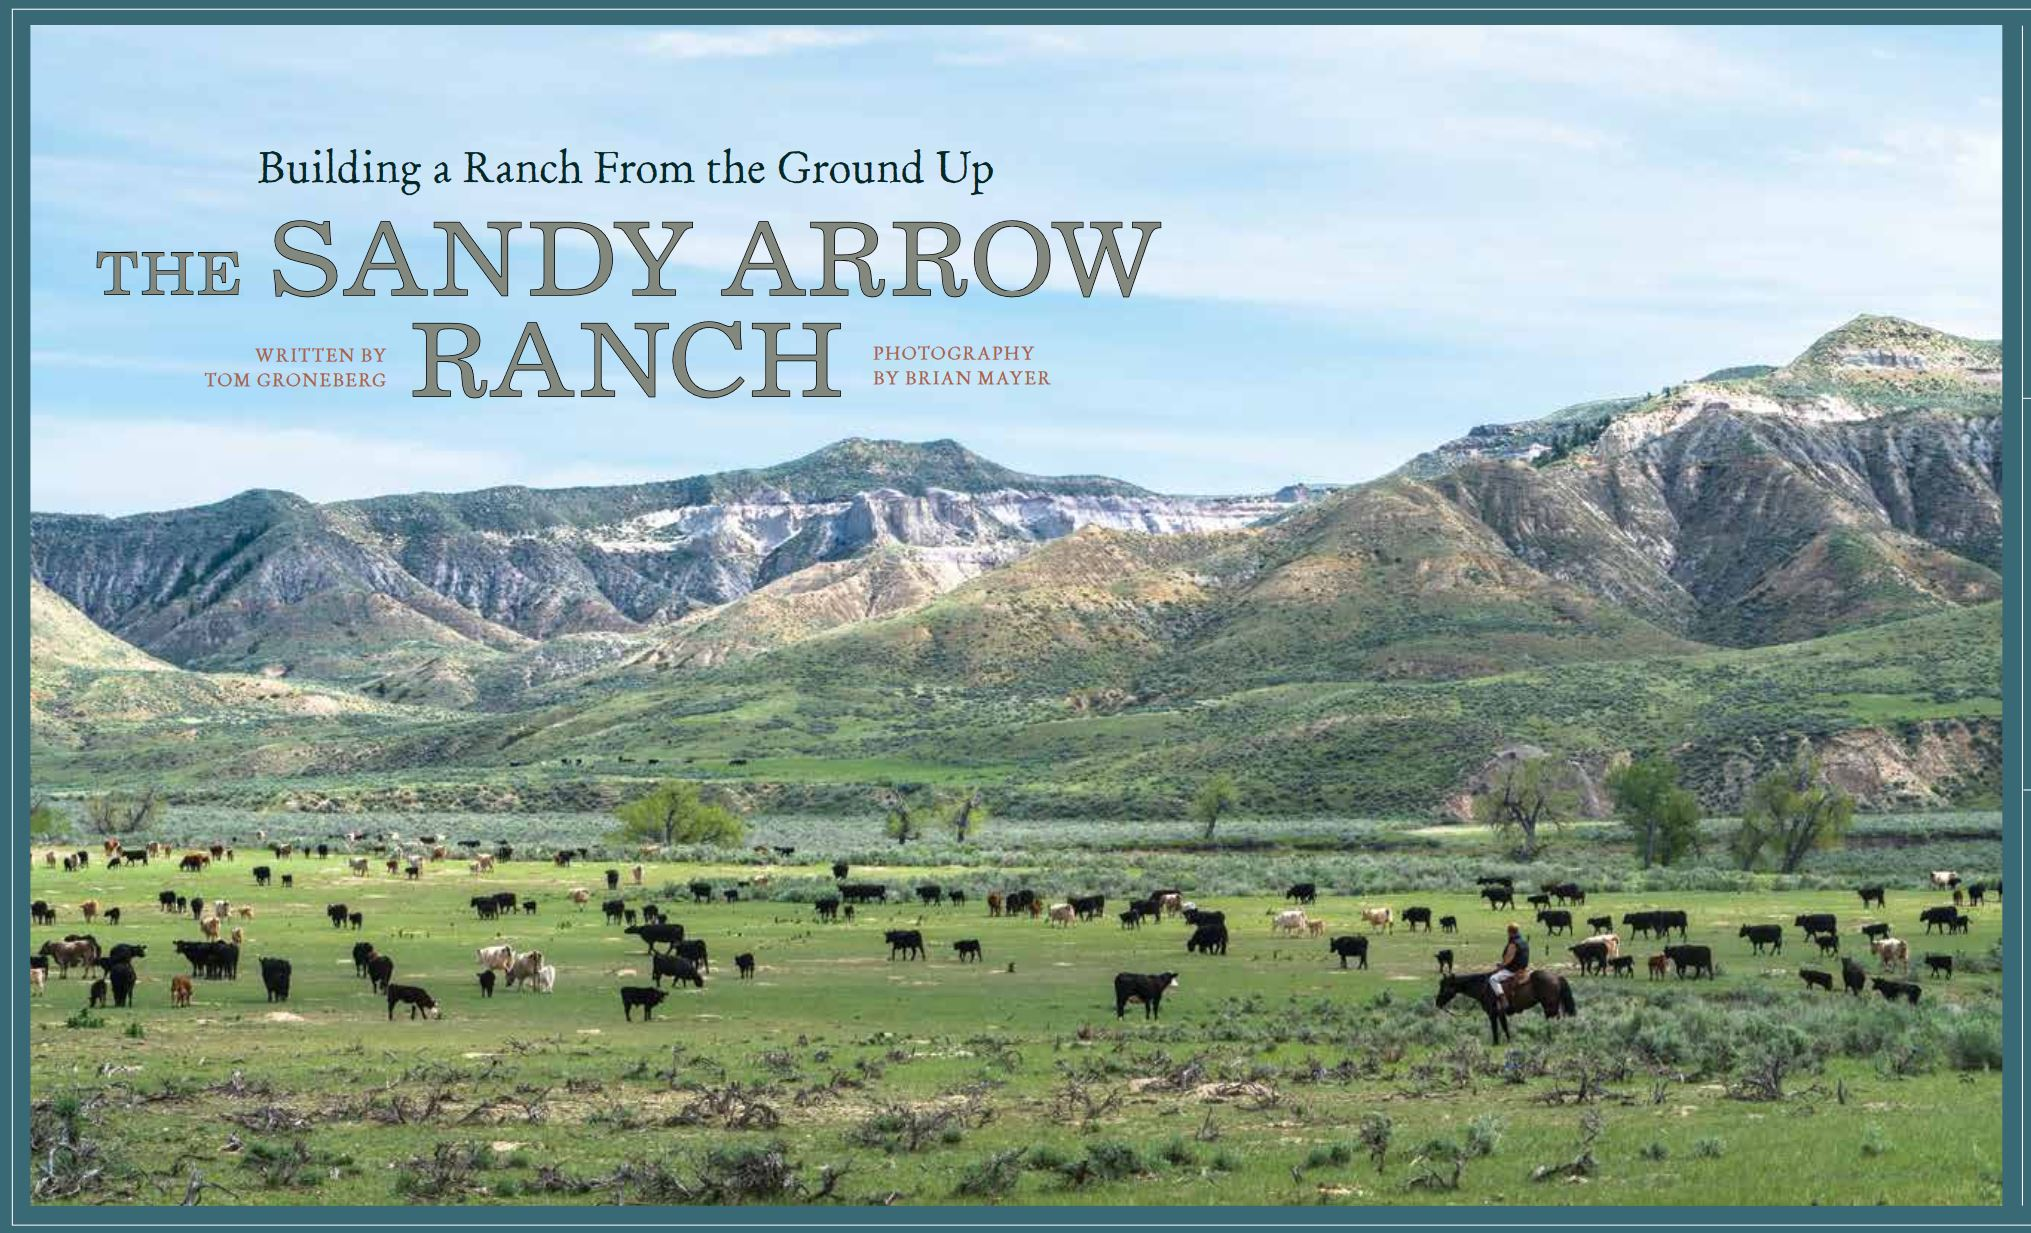 SA Ranch Profile in Big Sky Journal